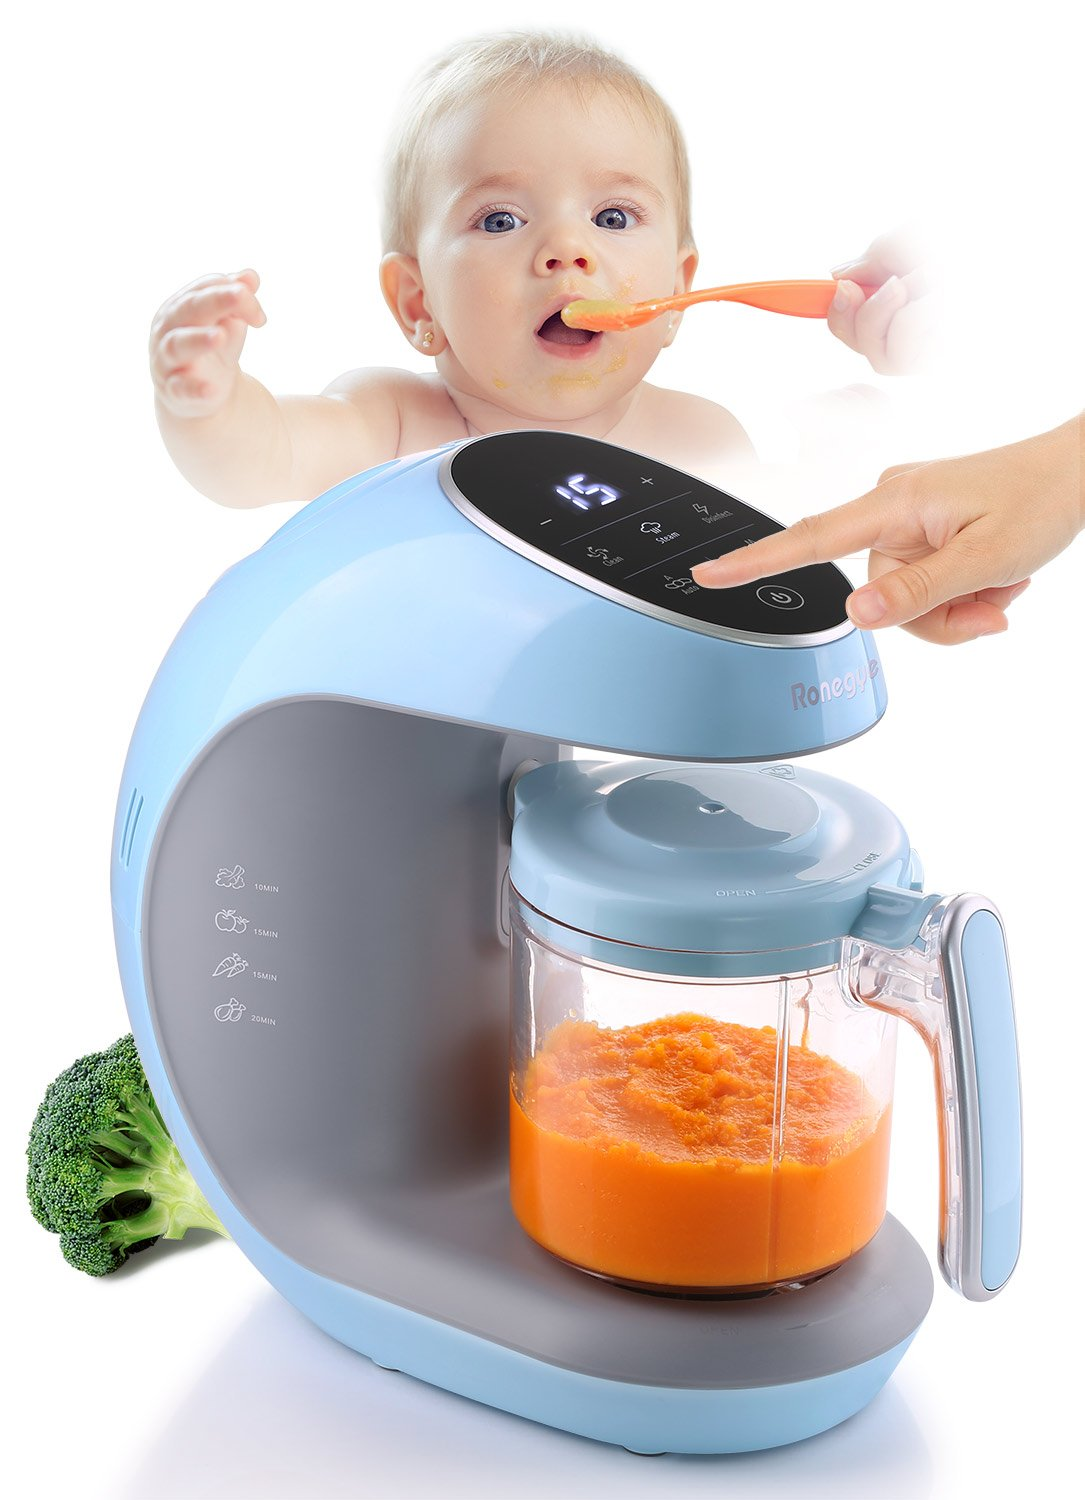 Ronegye Baby Food Cooker, Steamer and Blender with Smart Touch Panel for Easier to Operate, Blue